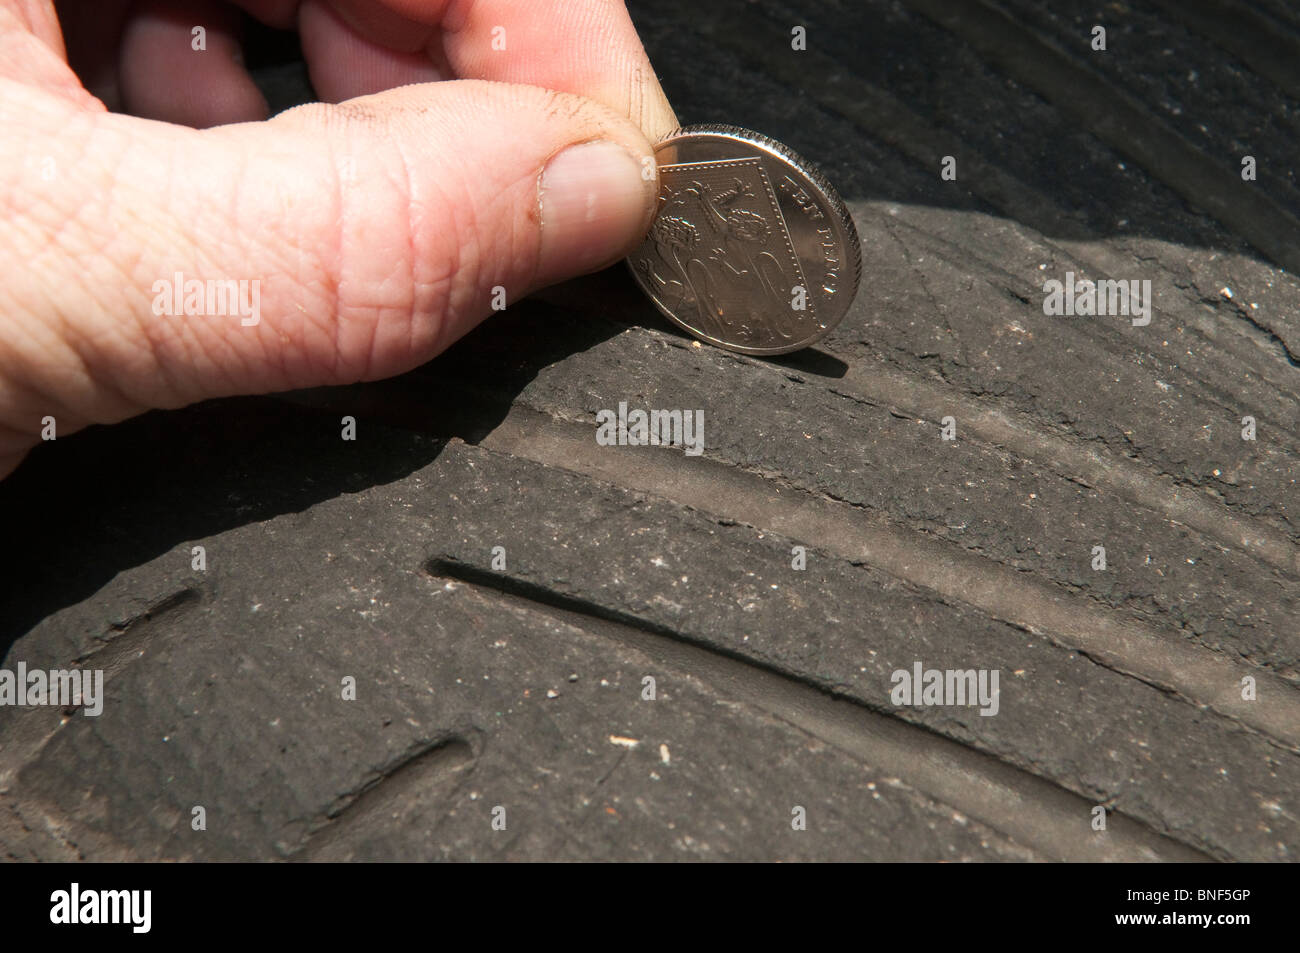 Illegal Car Tyre - Stock Image